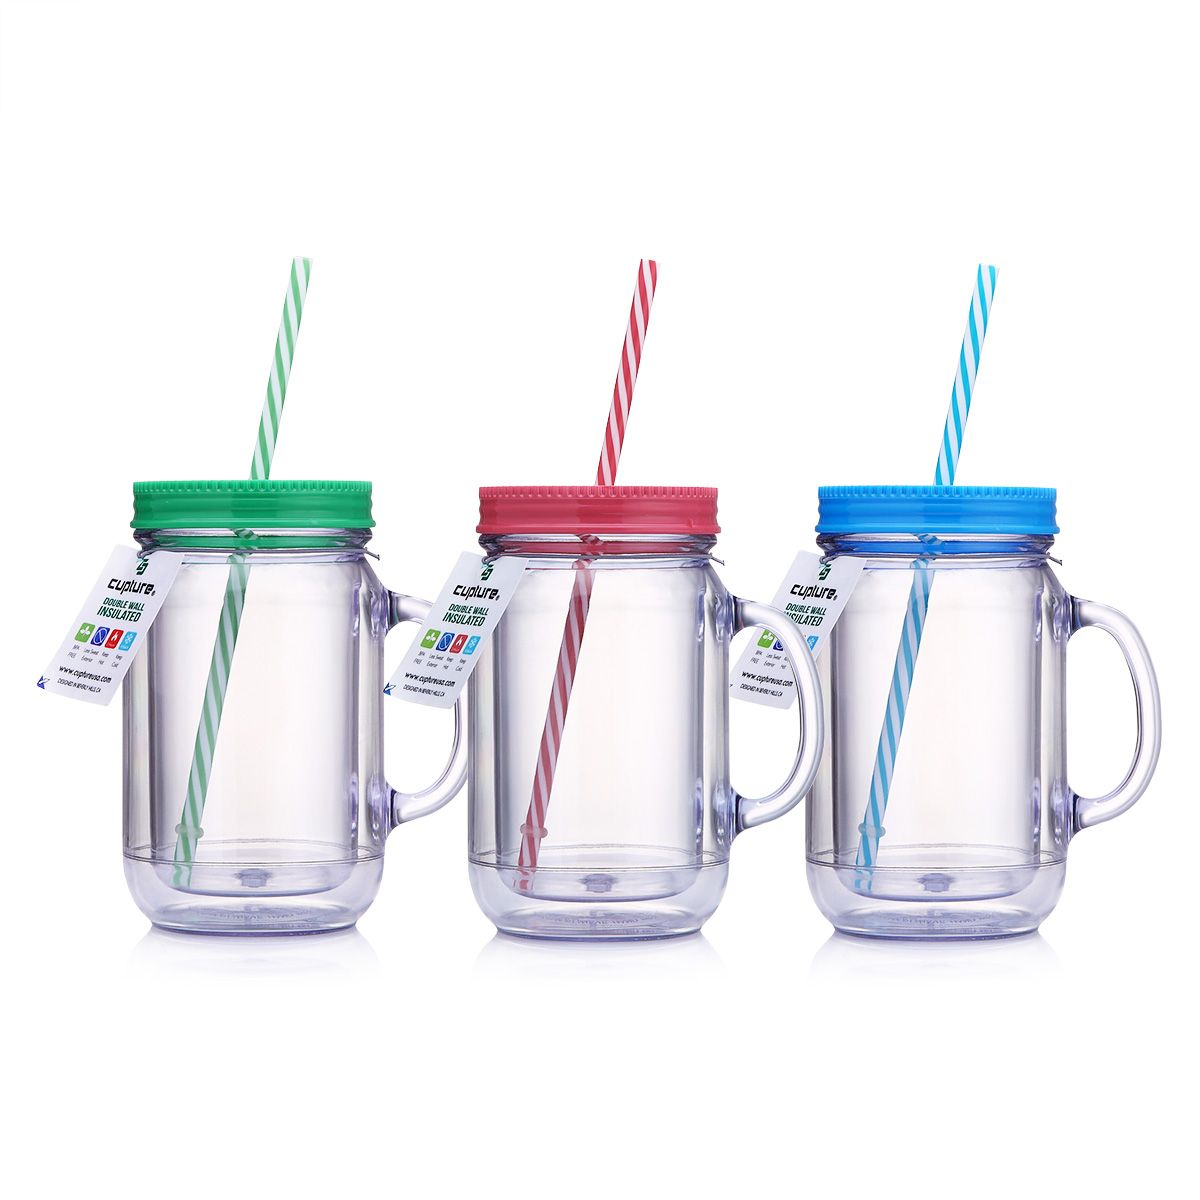 Cupture Double Wall Insulated Plastic Mason Jar Tumbler Mug With Striped Straws 20 Oz 3 Pack Walmart Com In 2020 Mason Jar Tumbler Plastic Mason Jars Mason Jar Drinks